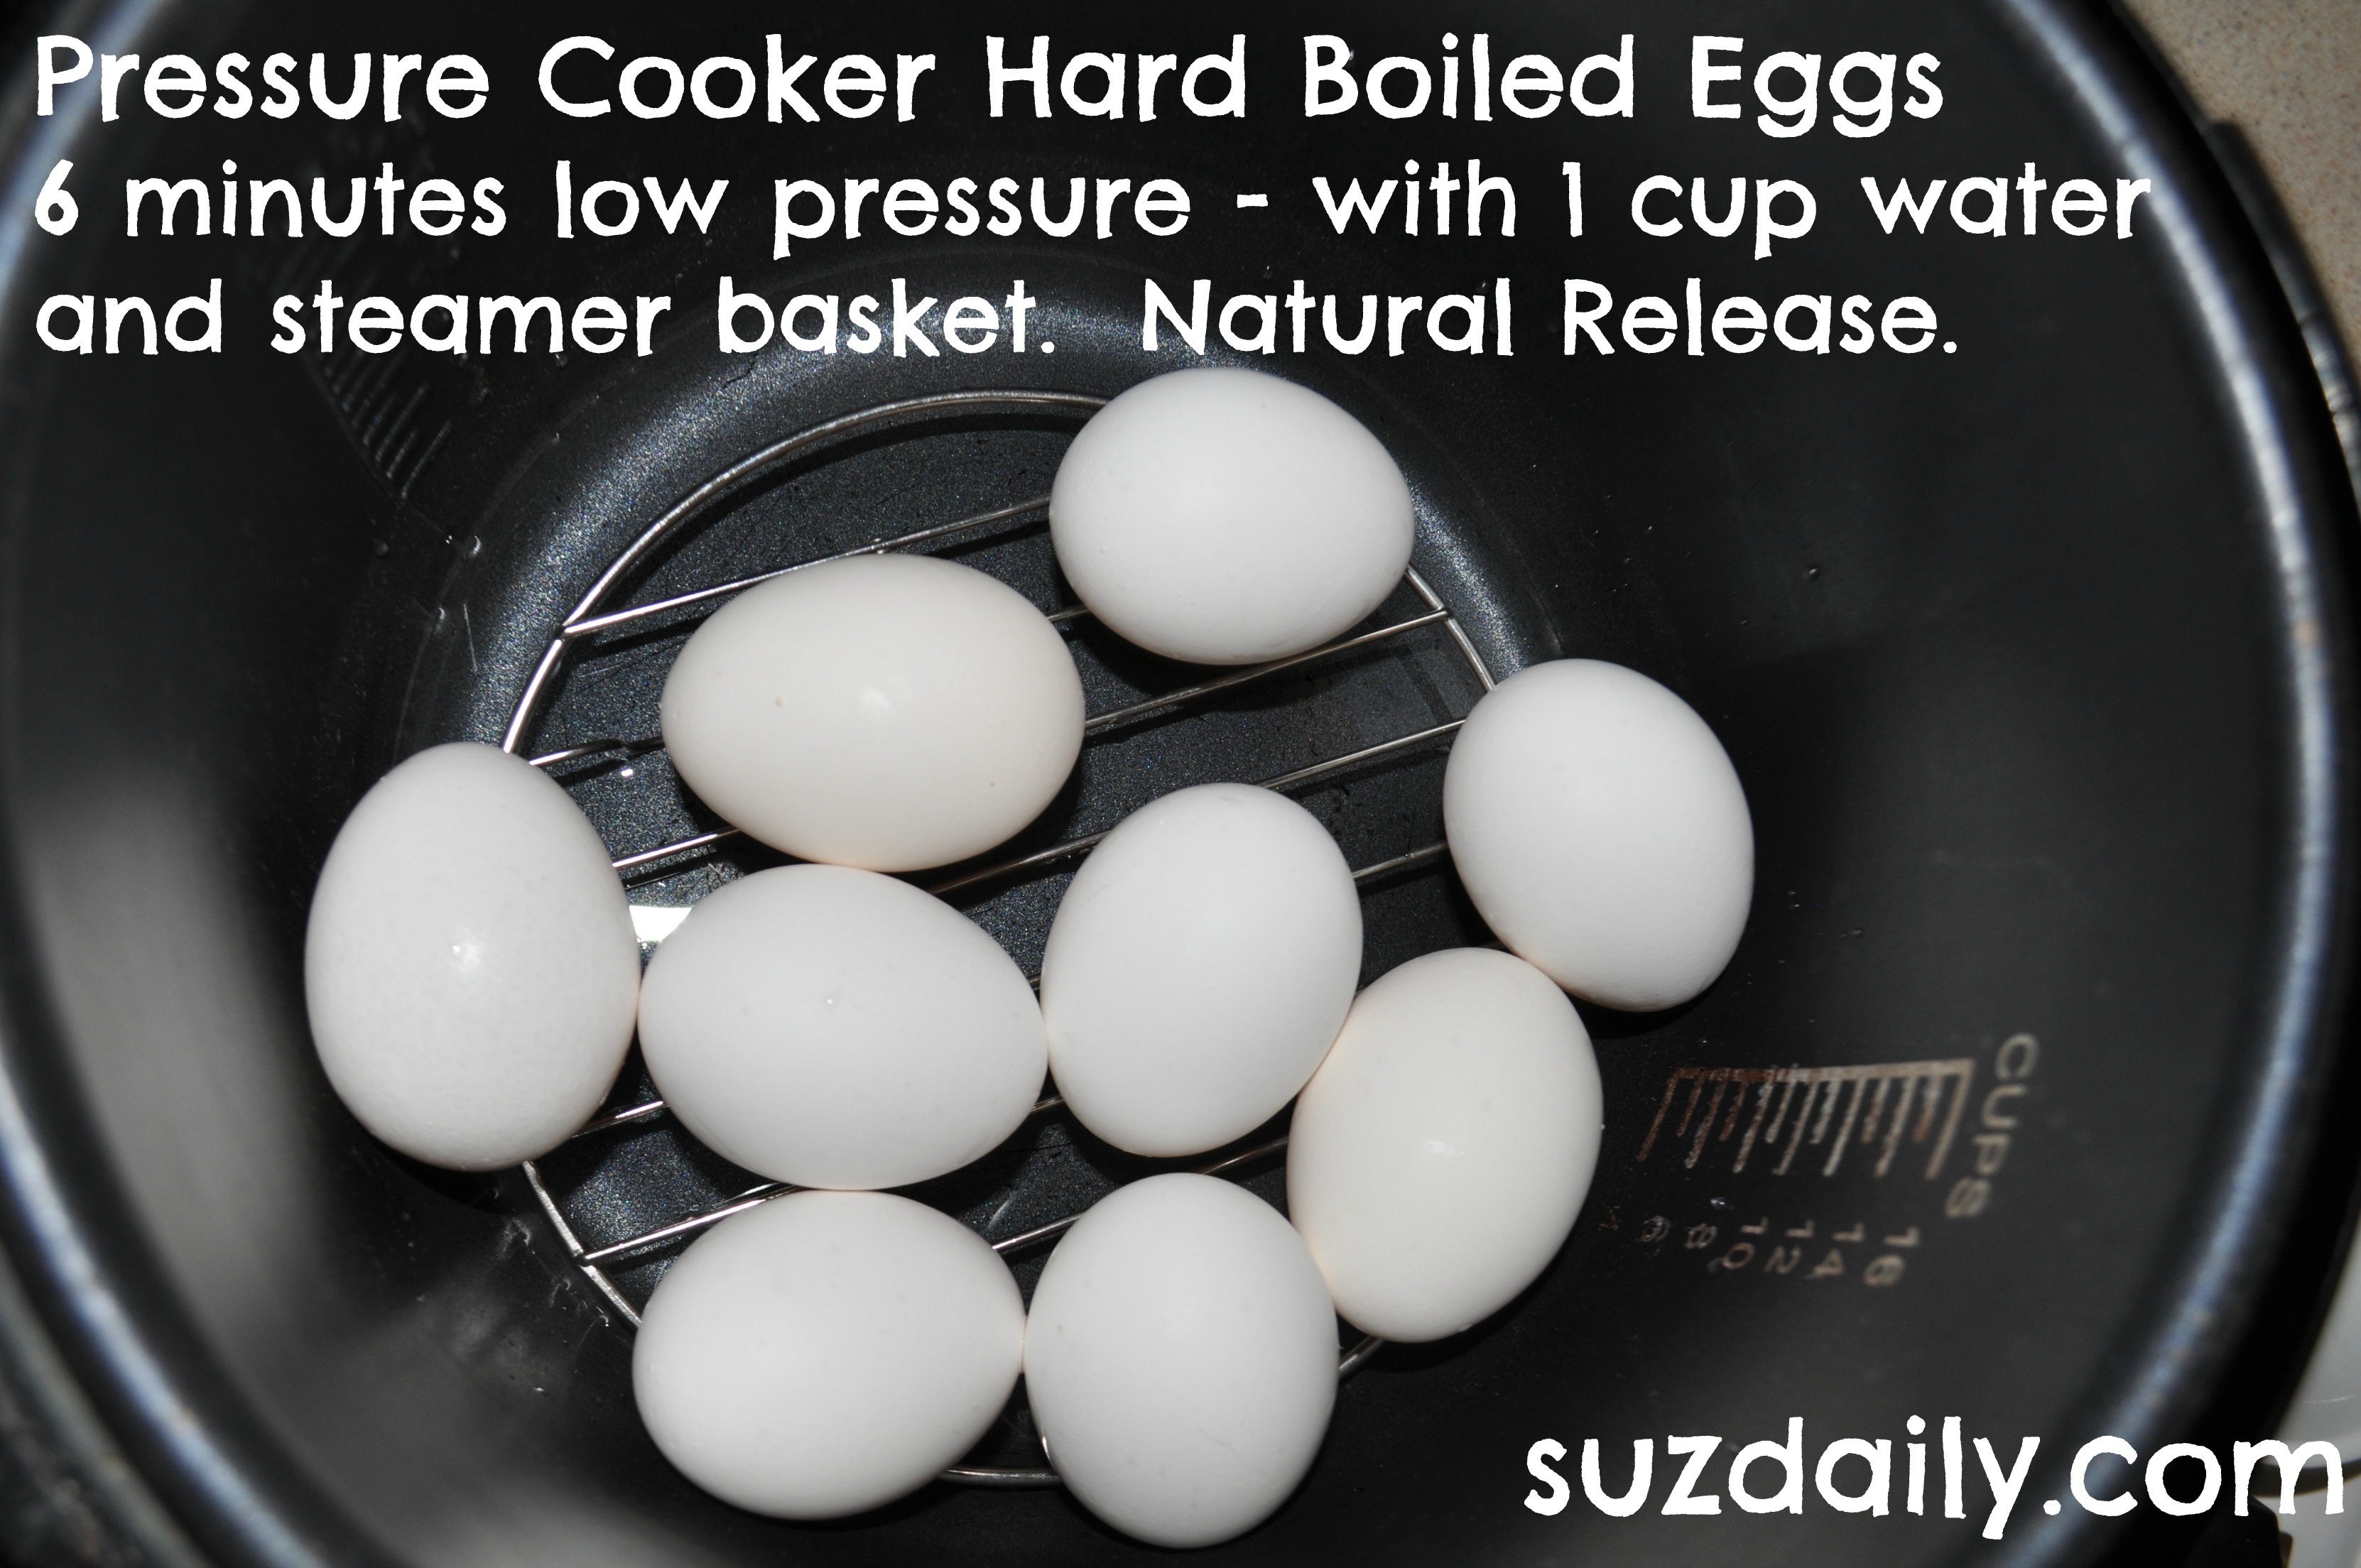 How to Make Hard Boiled Eggs in the Pressure Cooker